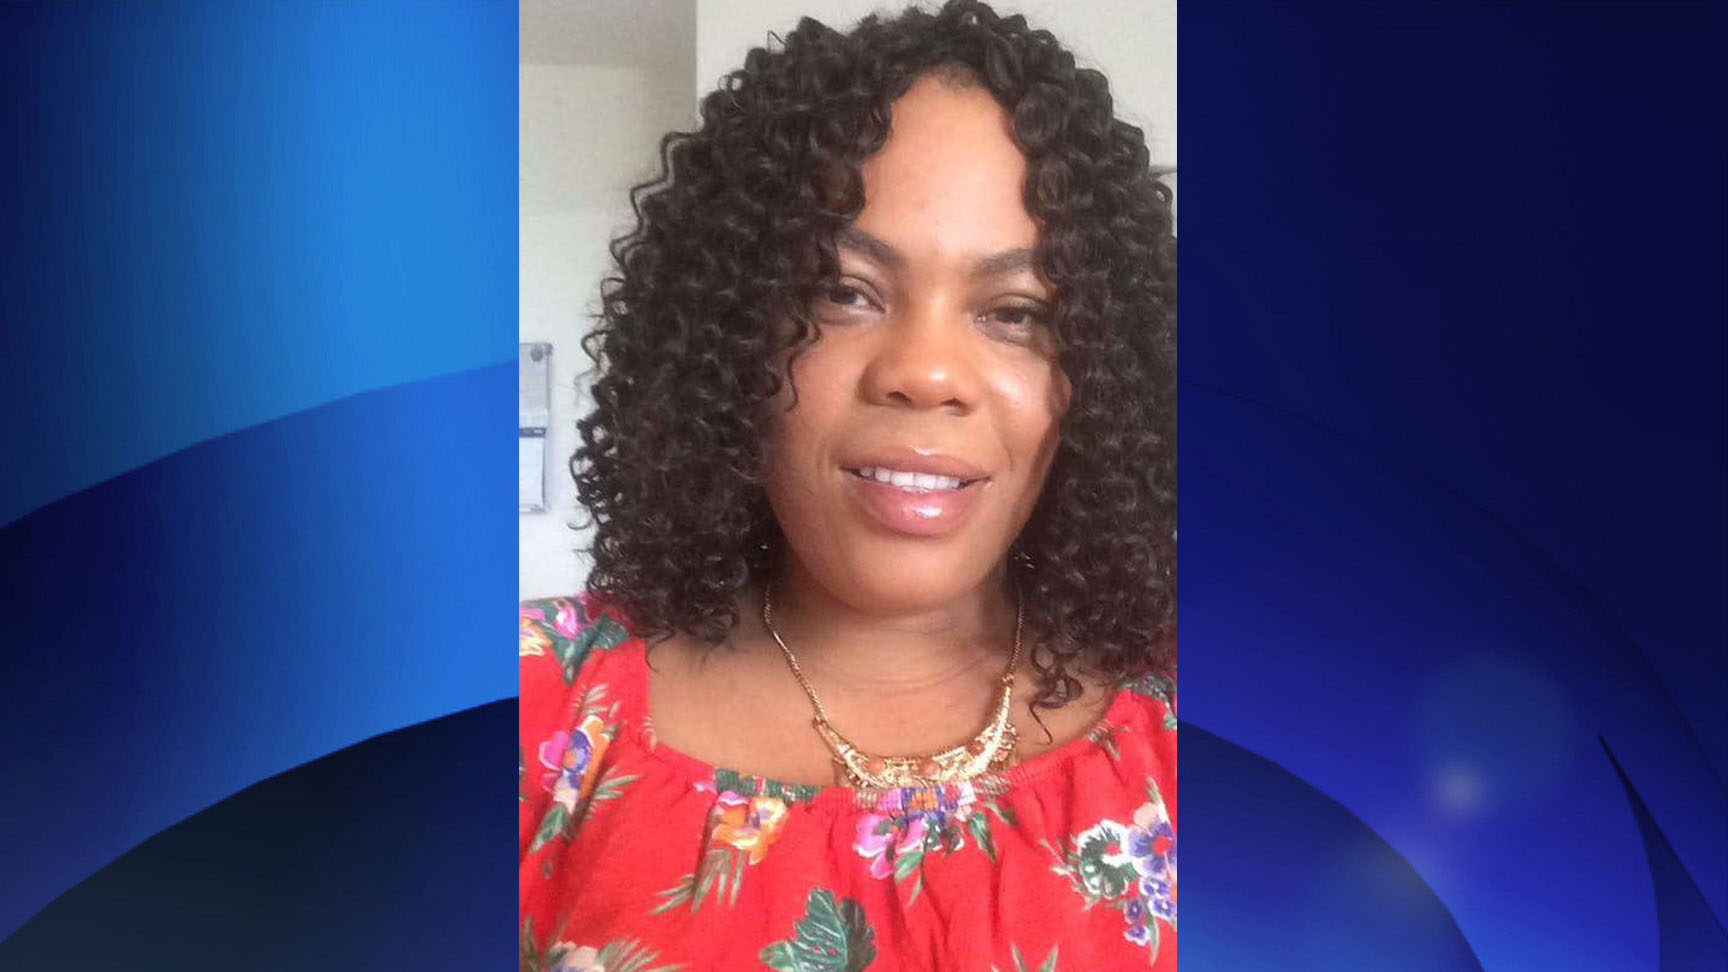 Police identify woman found murdered in North York park